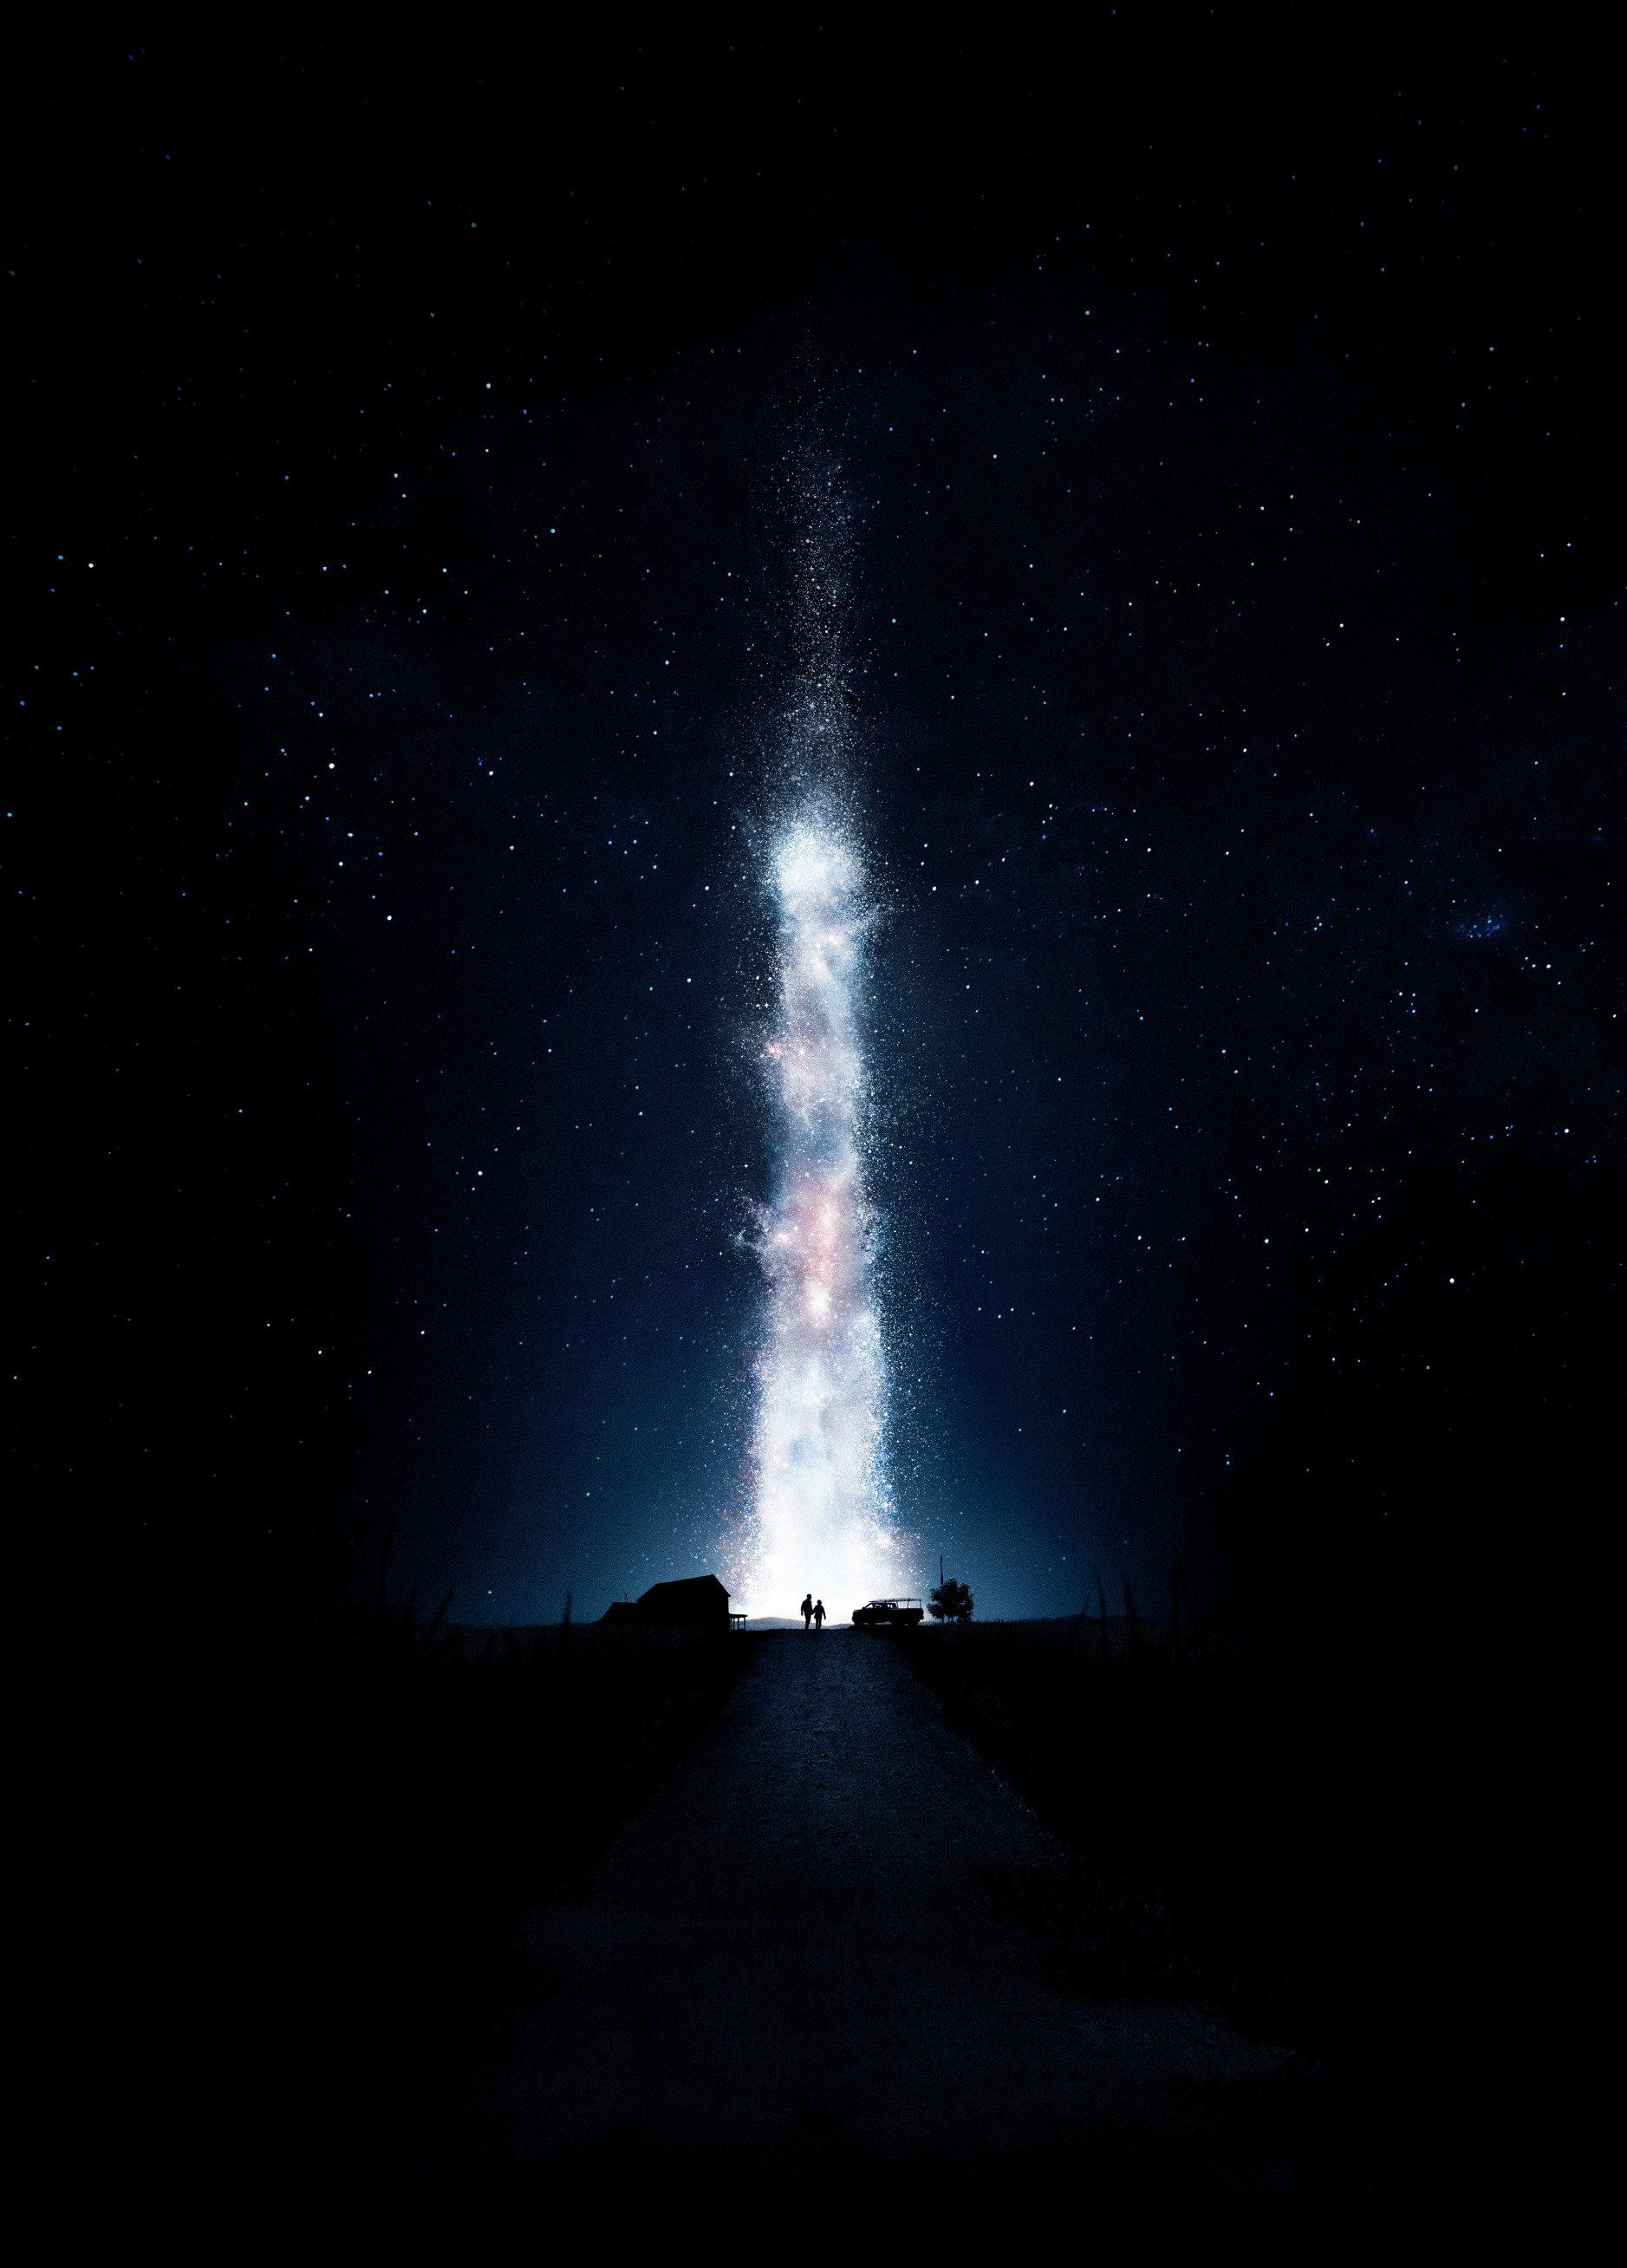 Posters De Películas Sin Las Letras Interstellar Movie